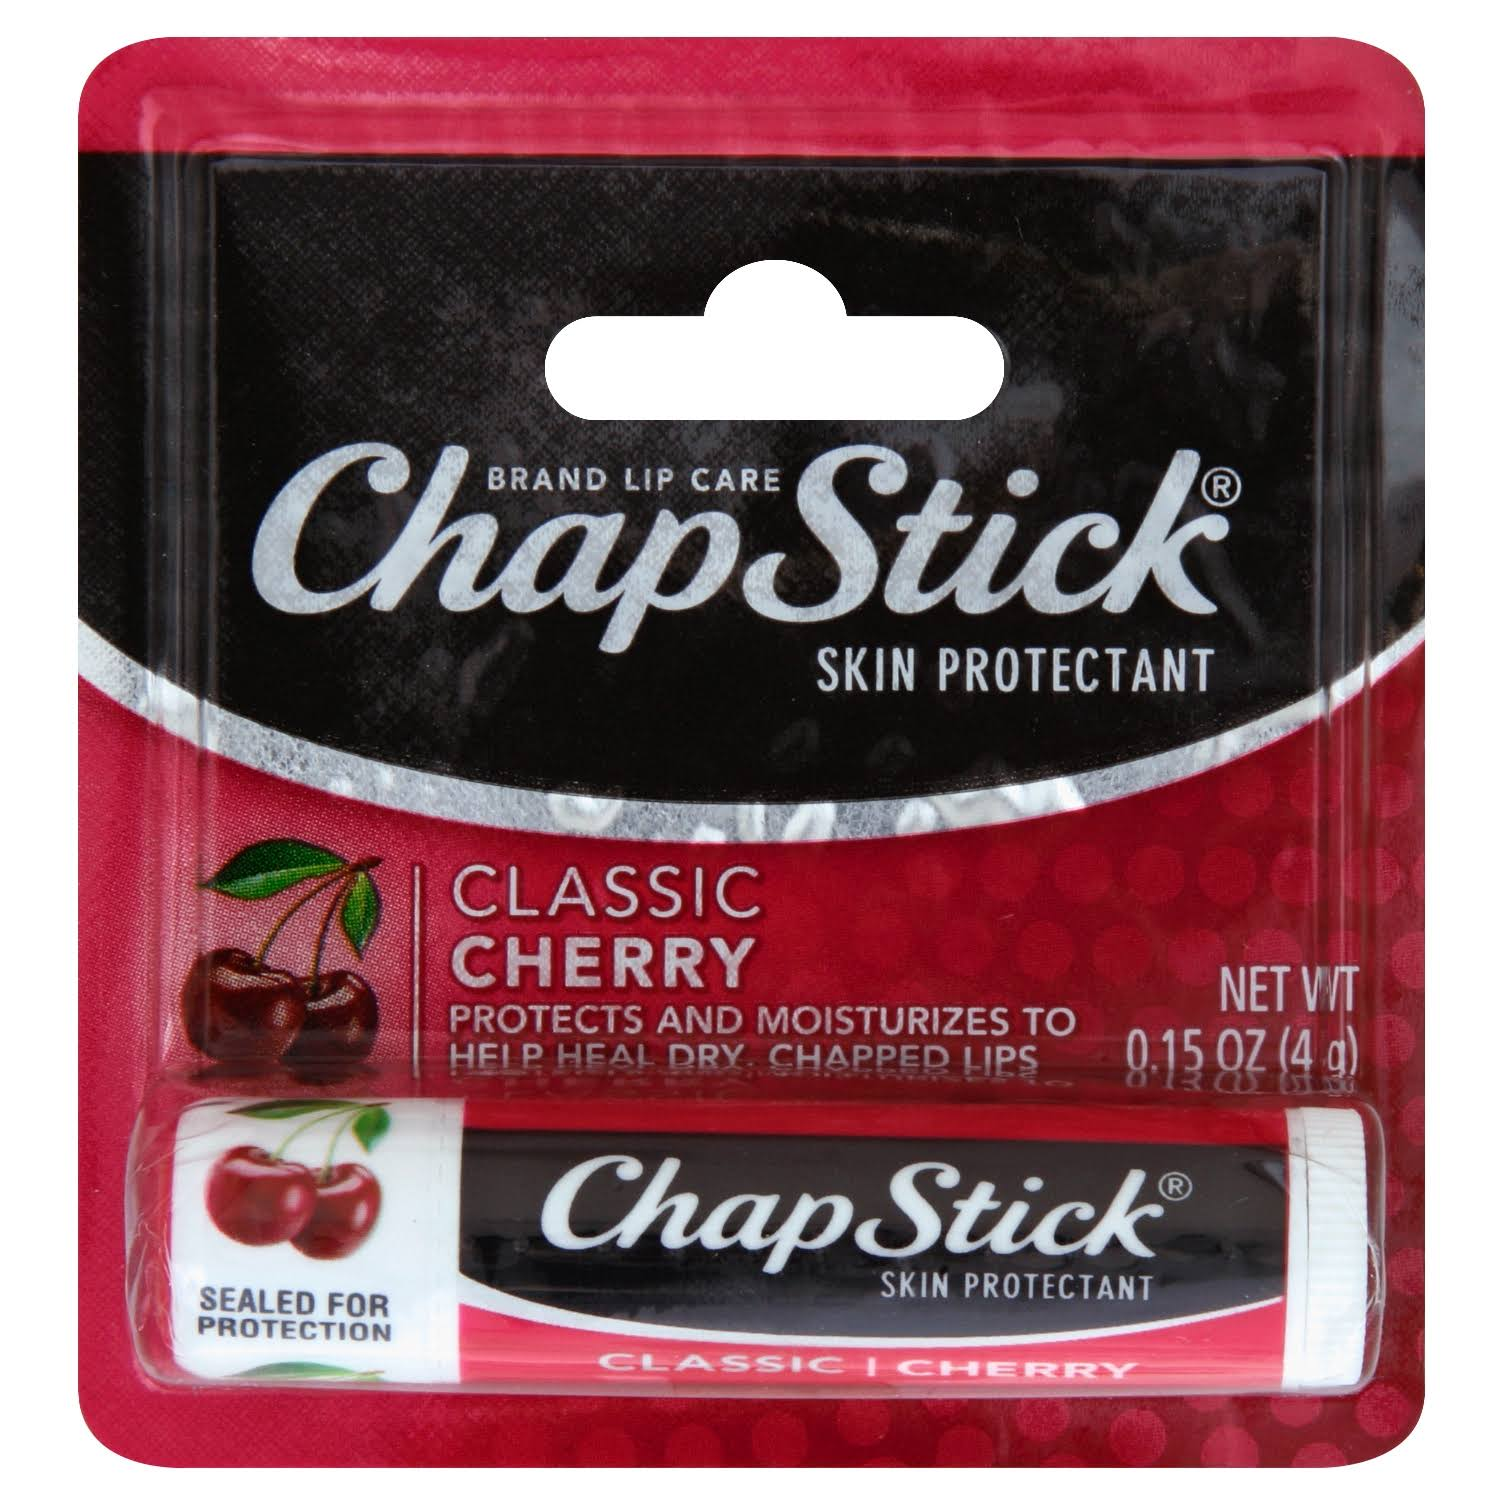 Chap Stick Classic Lip Balm Tube - Cherry Flavor, 0.15oz